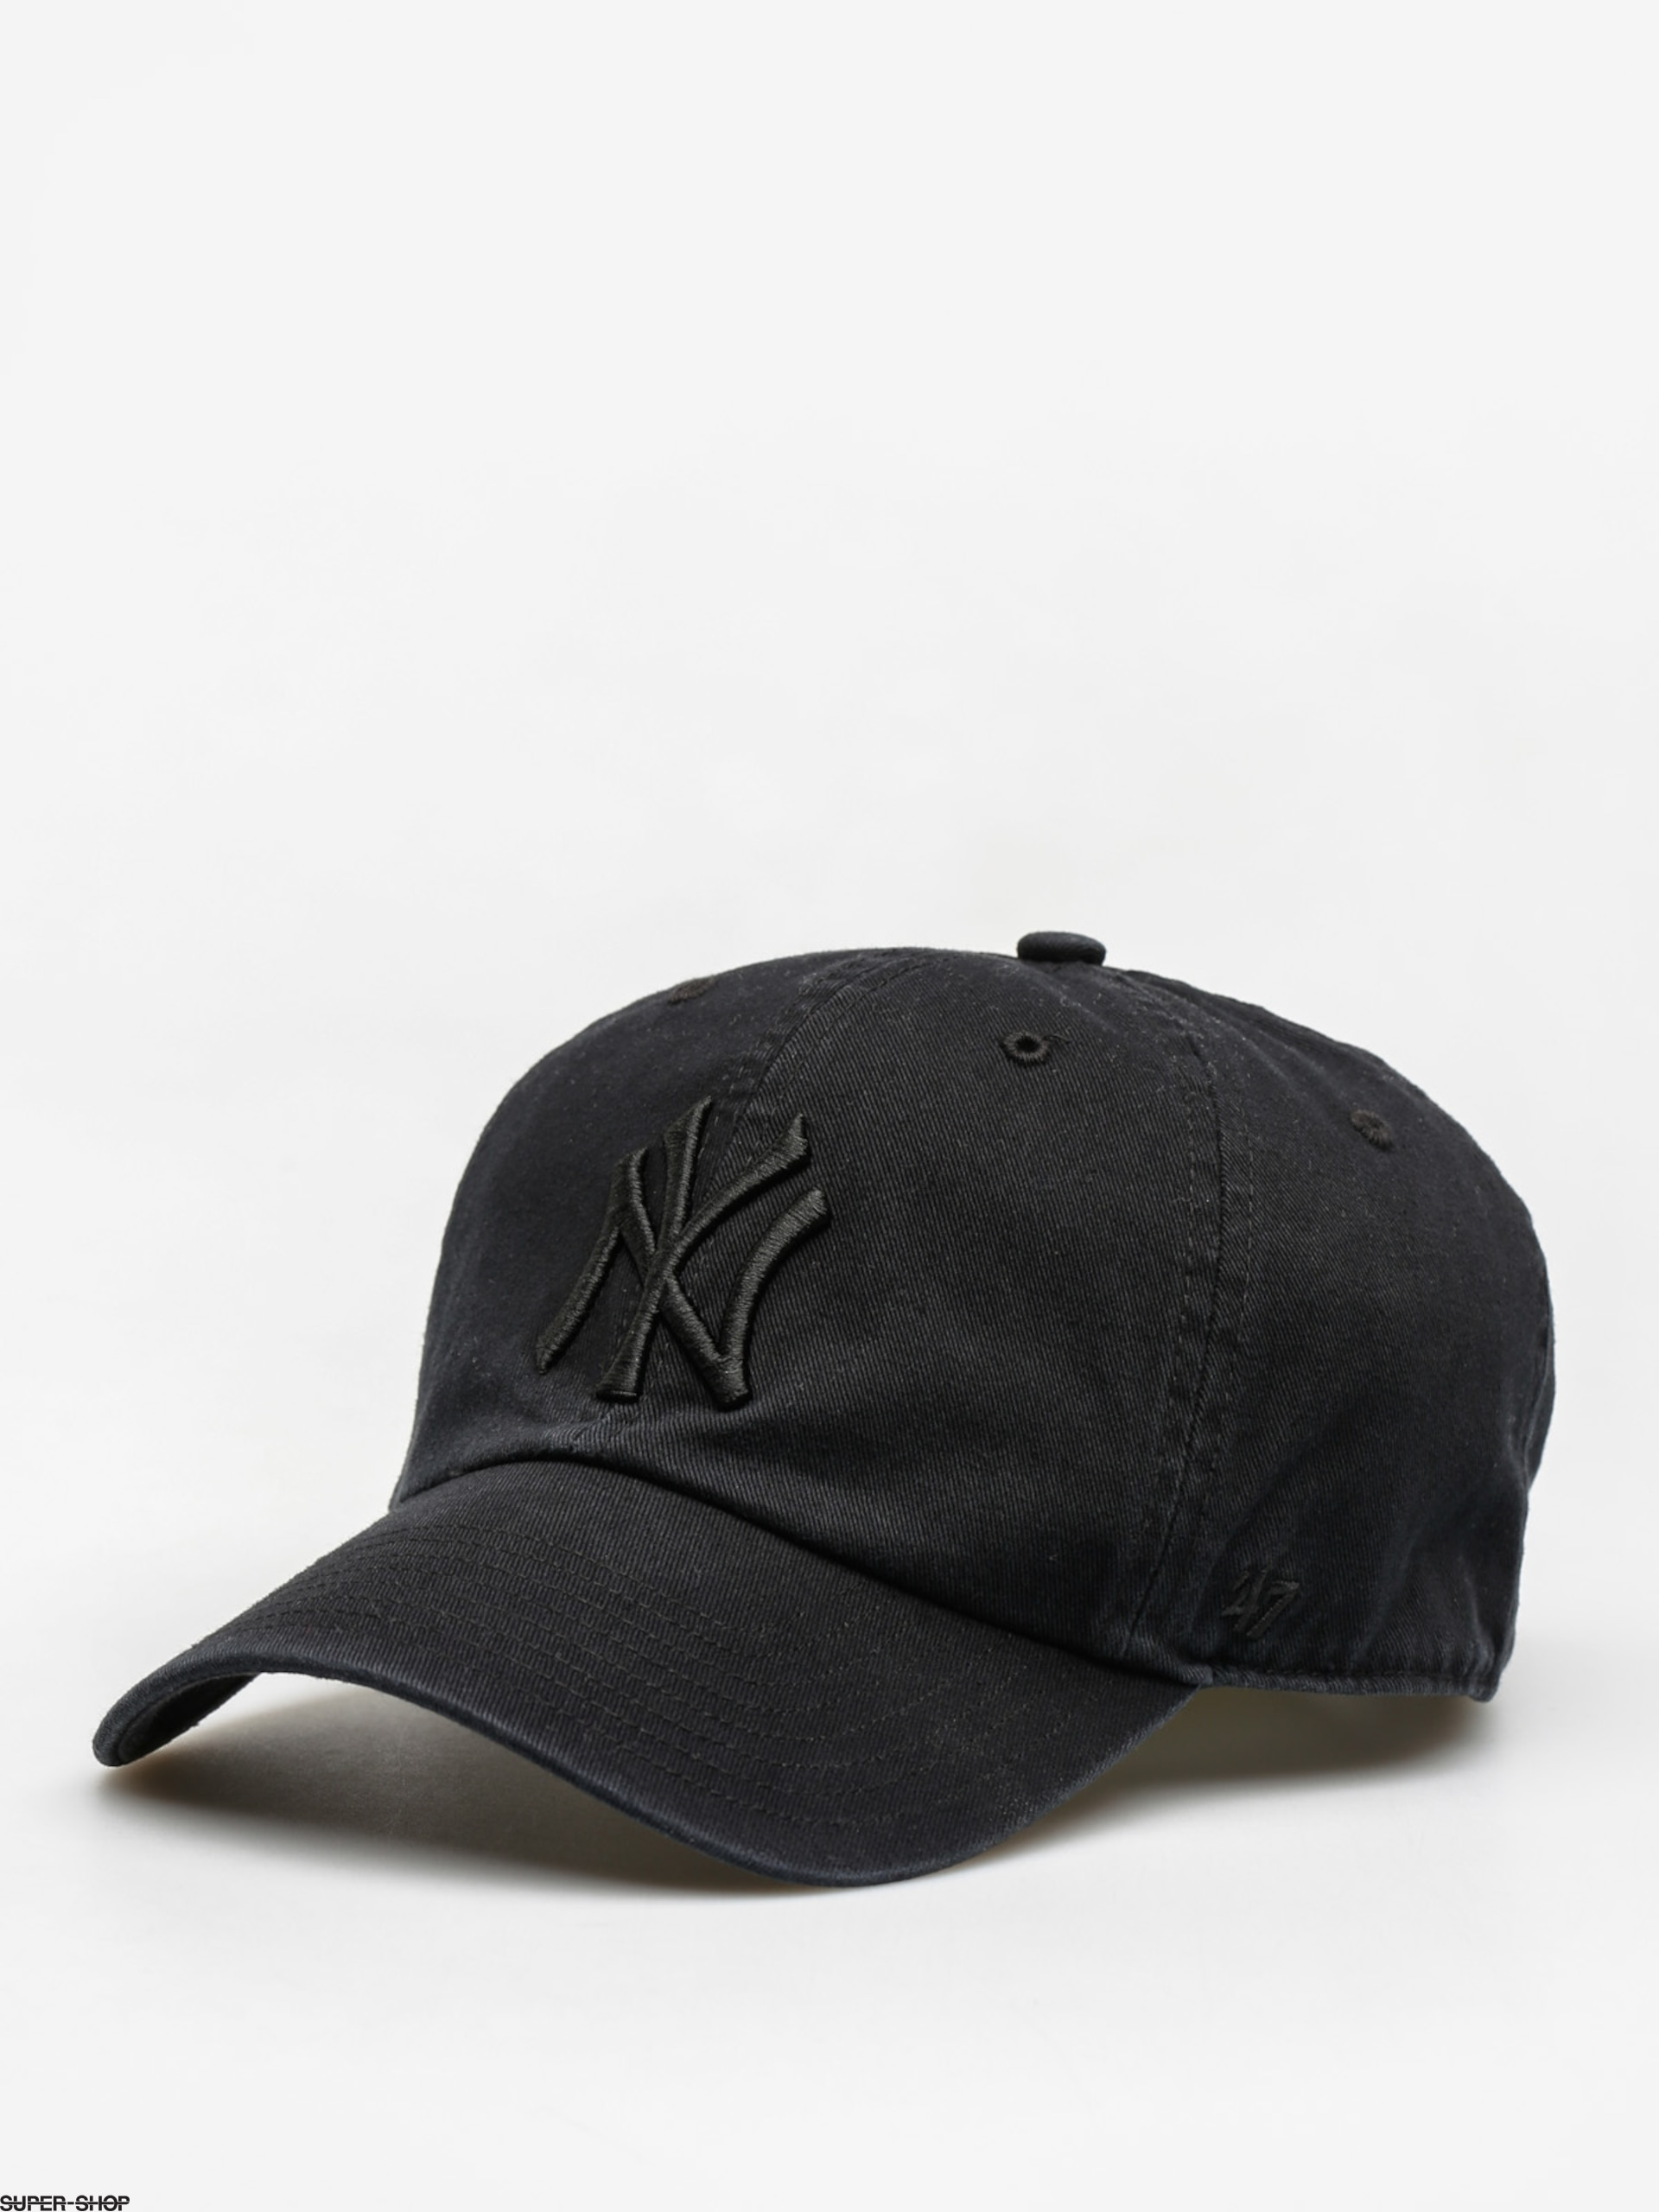 06aa264adf16d ... official 47 brand cap new york yankees zd all black 7636a c3a26